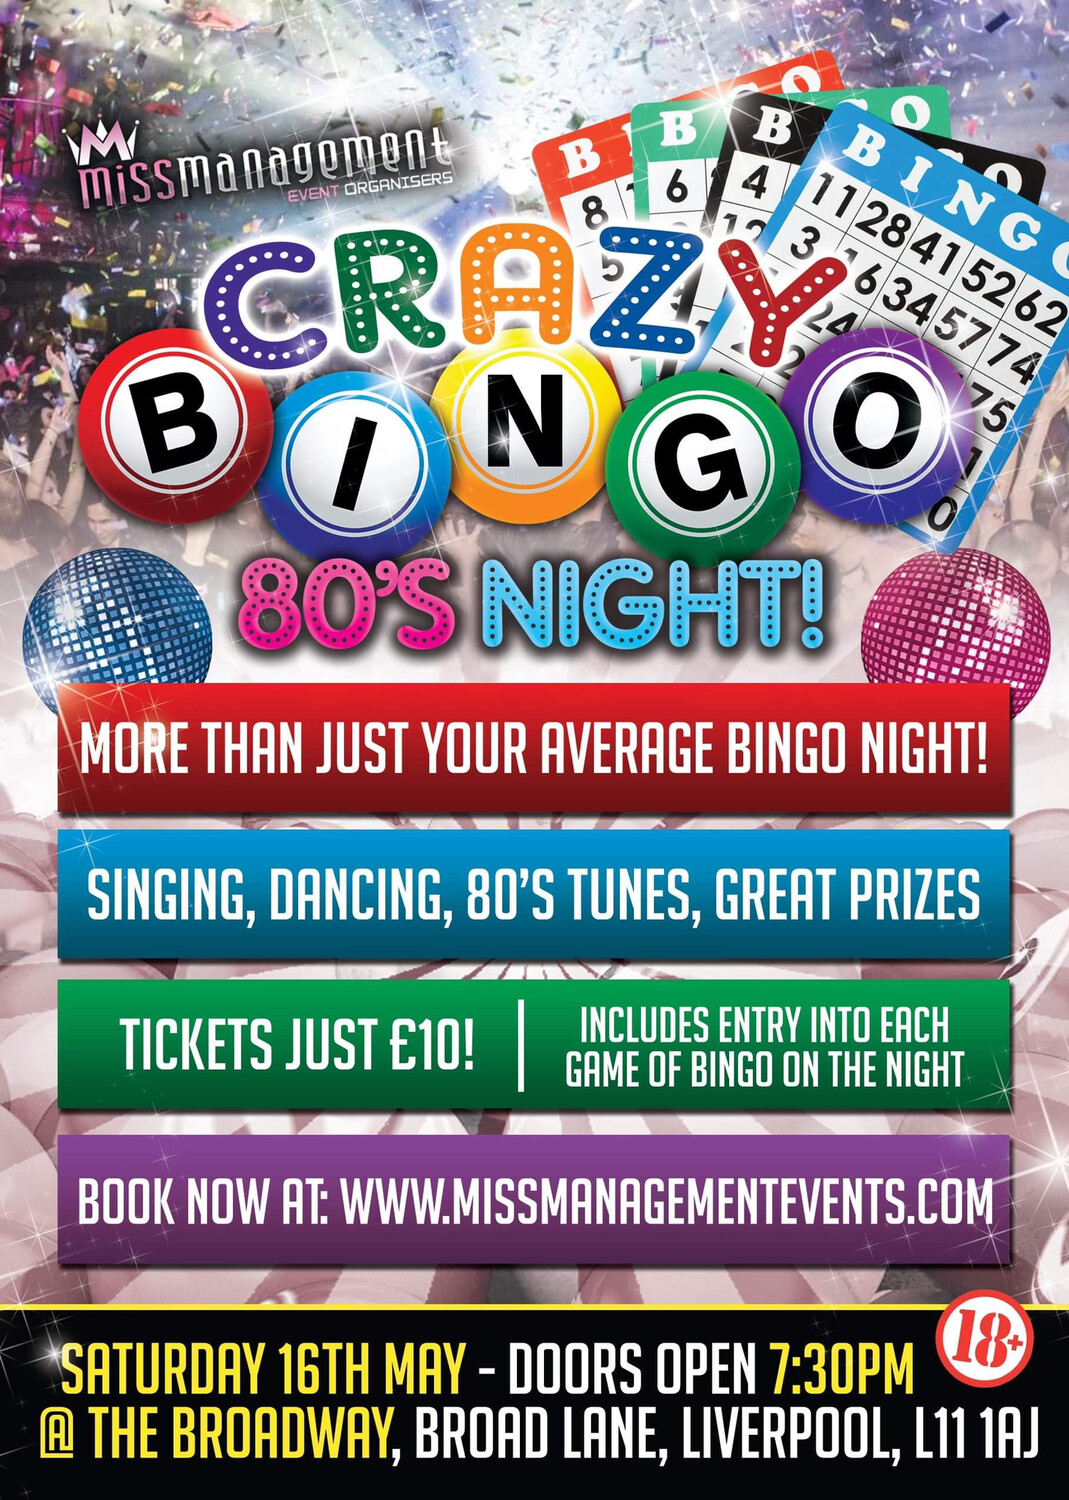 (CB005) 'Crazy Bingo' 80's Theme: Table For Five (Liverpool) Saturday 16th May 2020